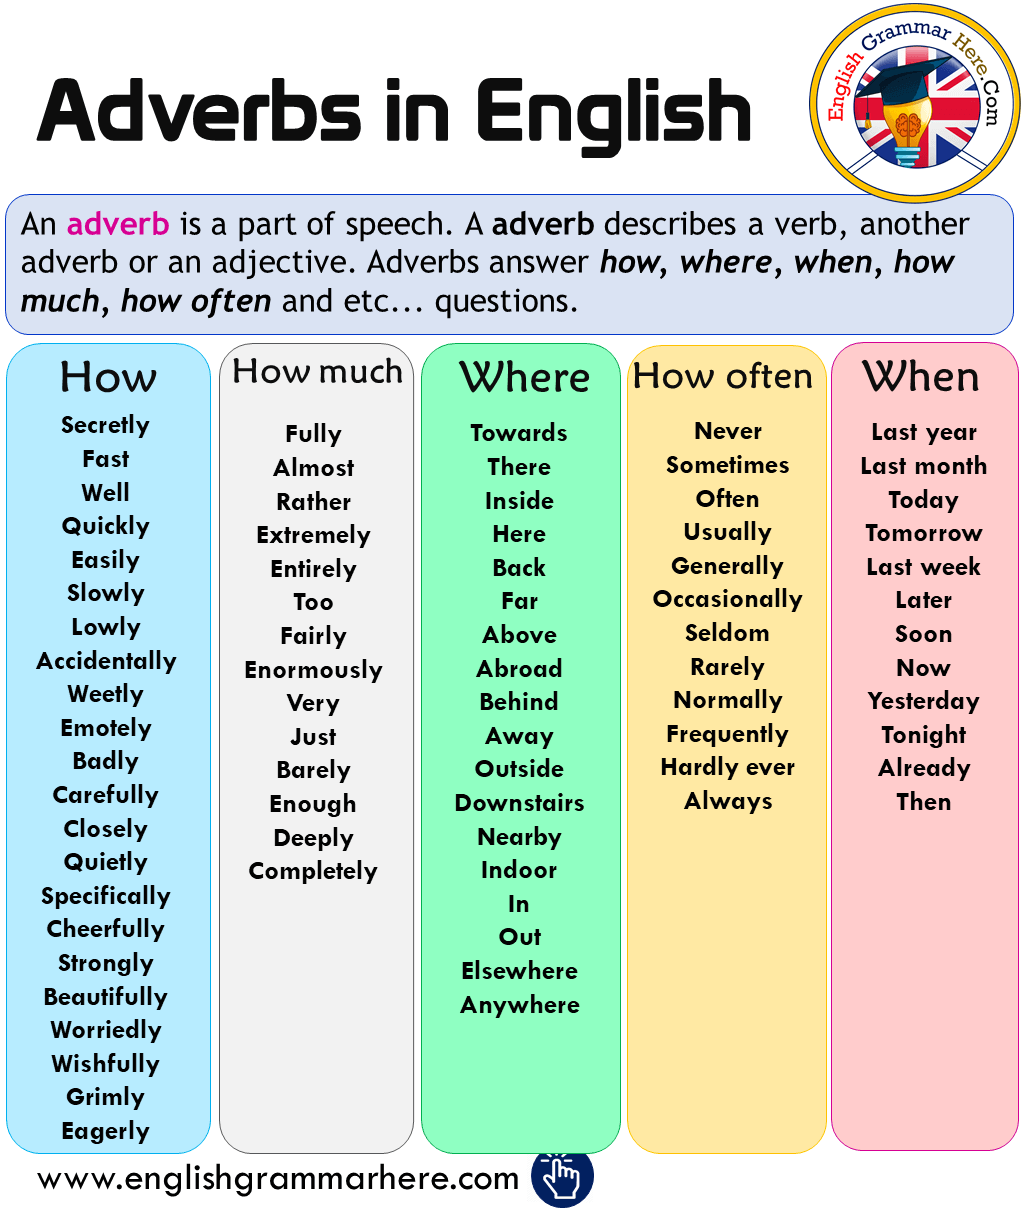 Adverbs in English, How, How Much, Where, How Often, When